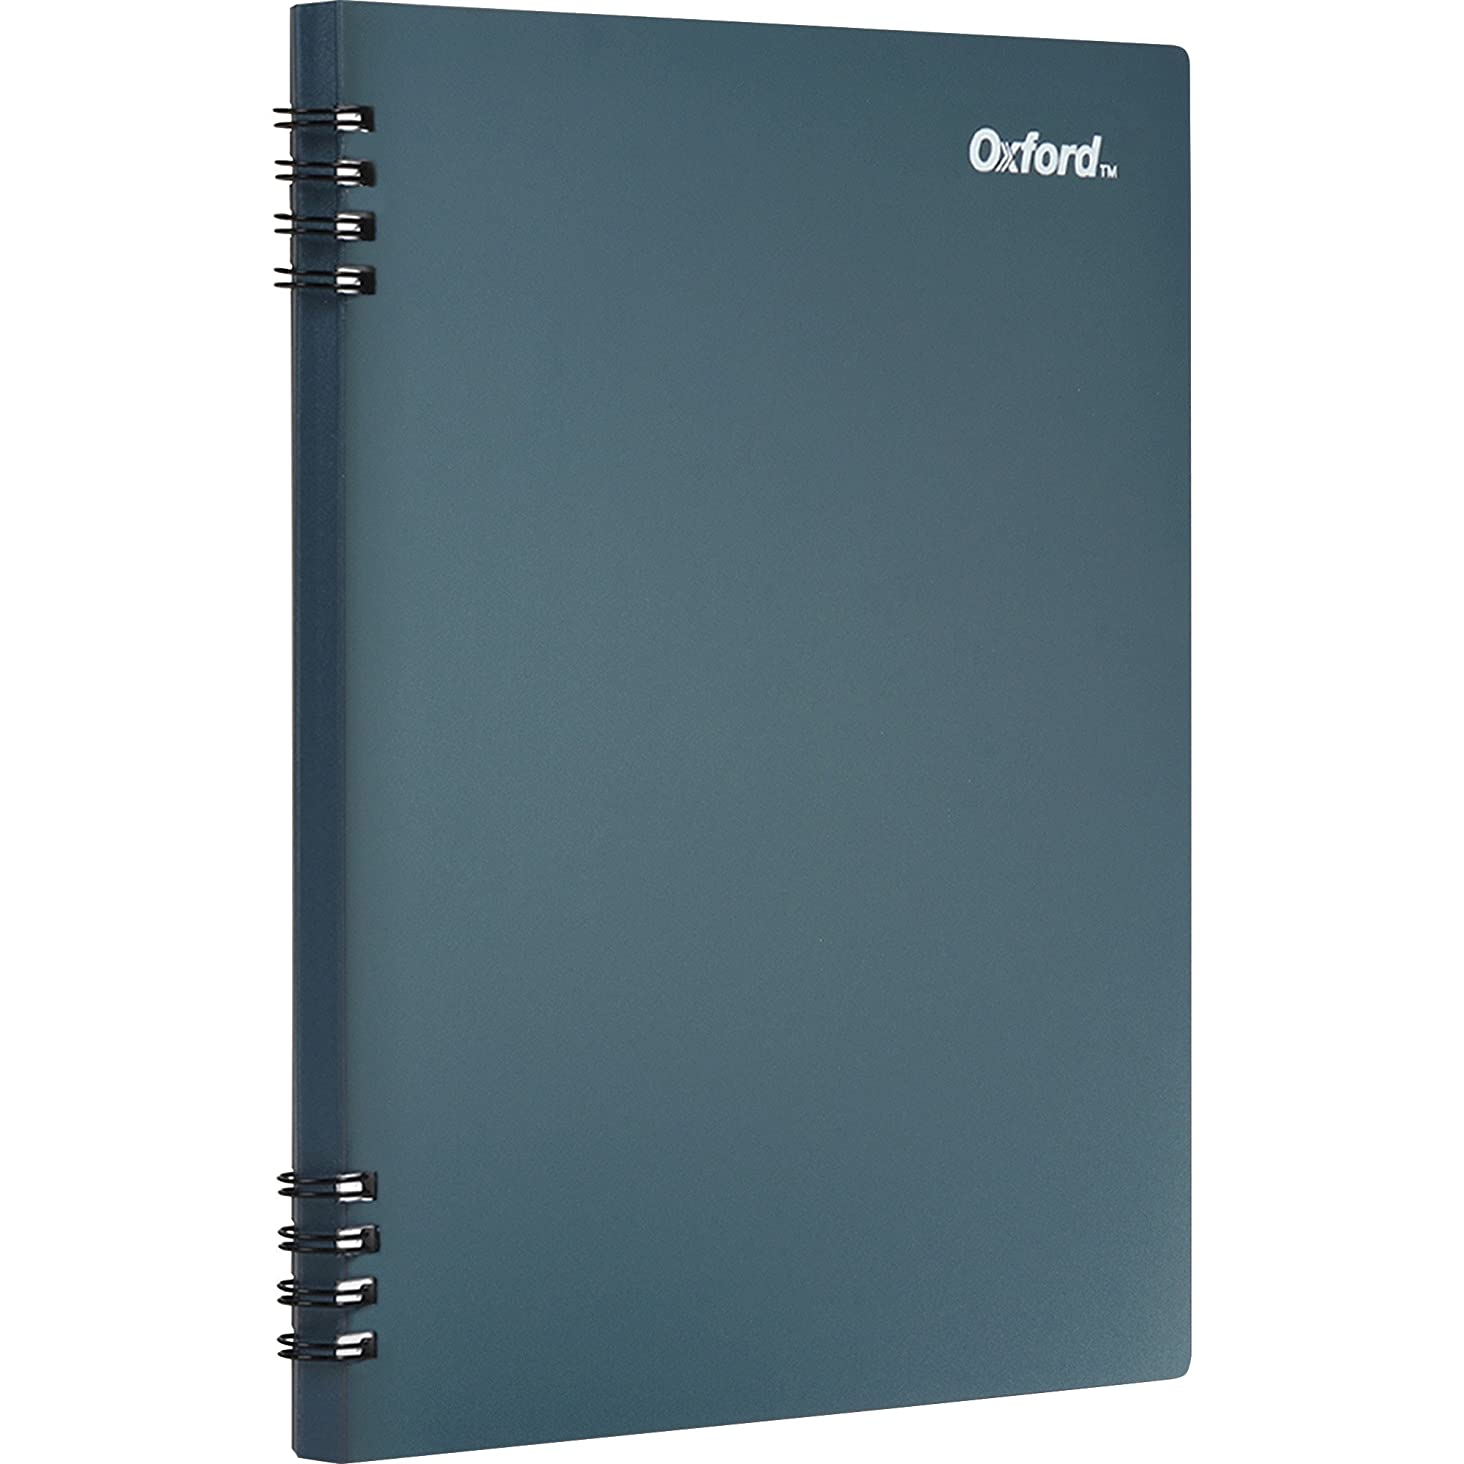 Oxford University Press Stone Paper Notebook - 60 Sheets - 6